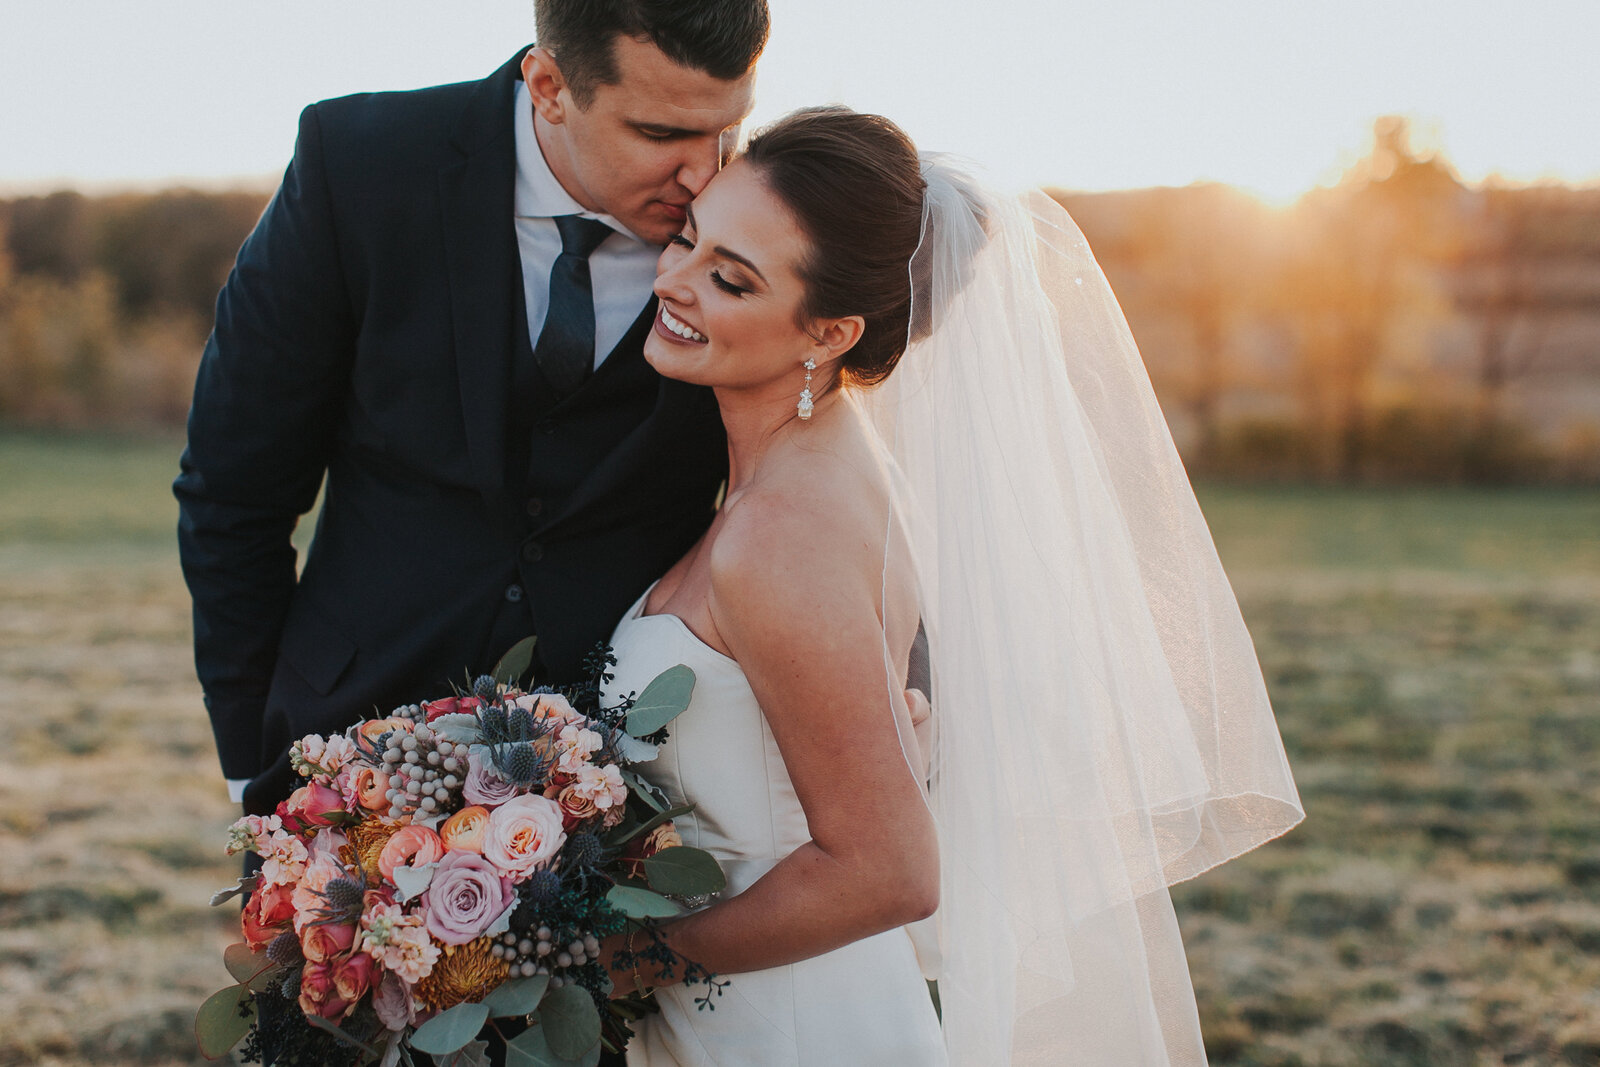 Bride+Groom+Sunset+Portraits